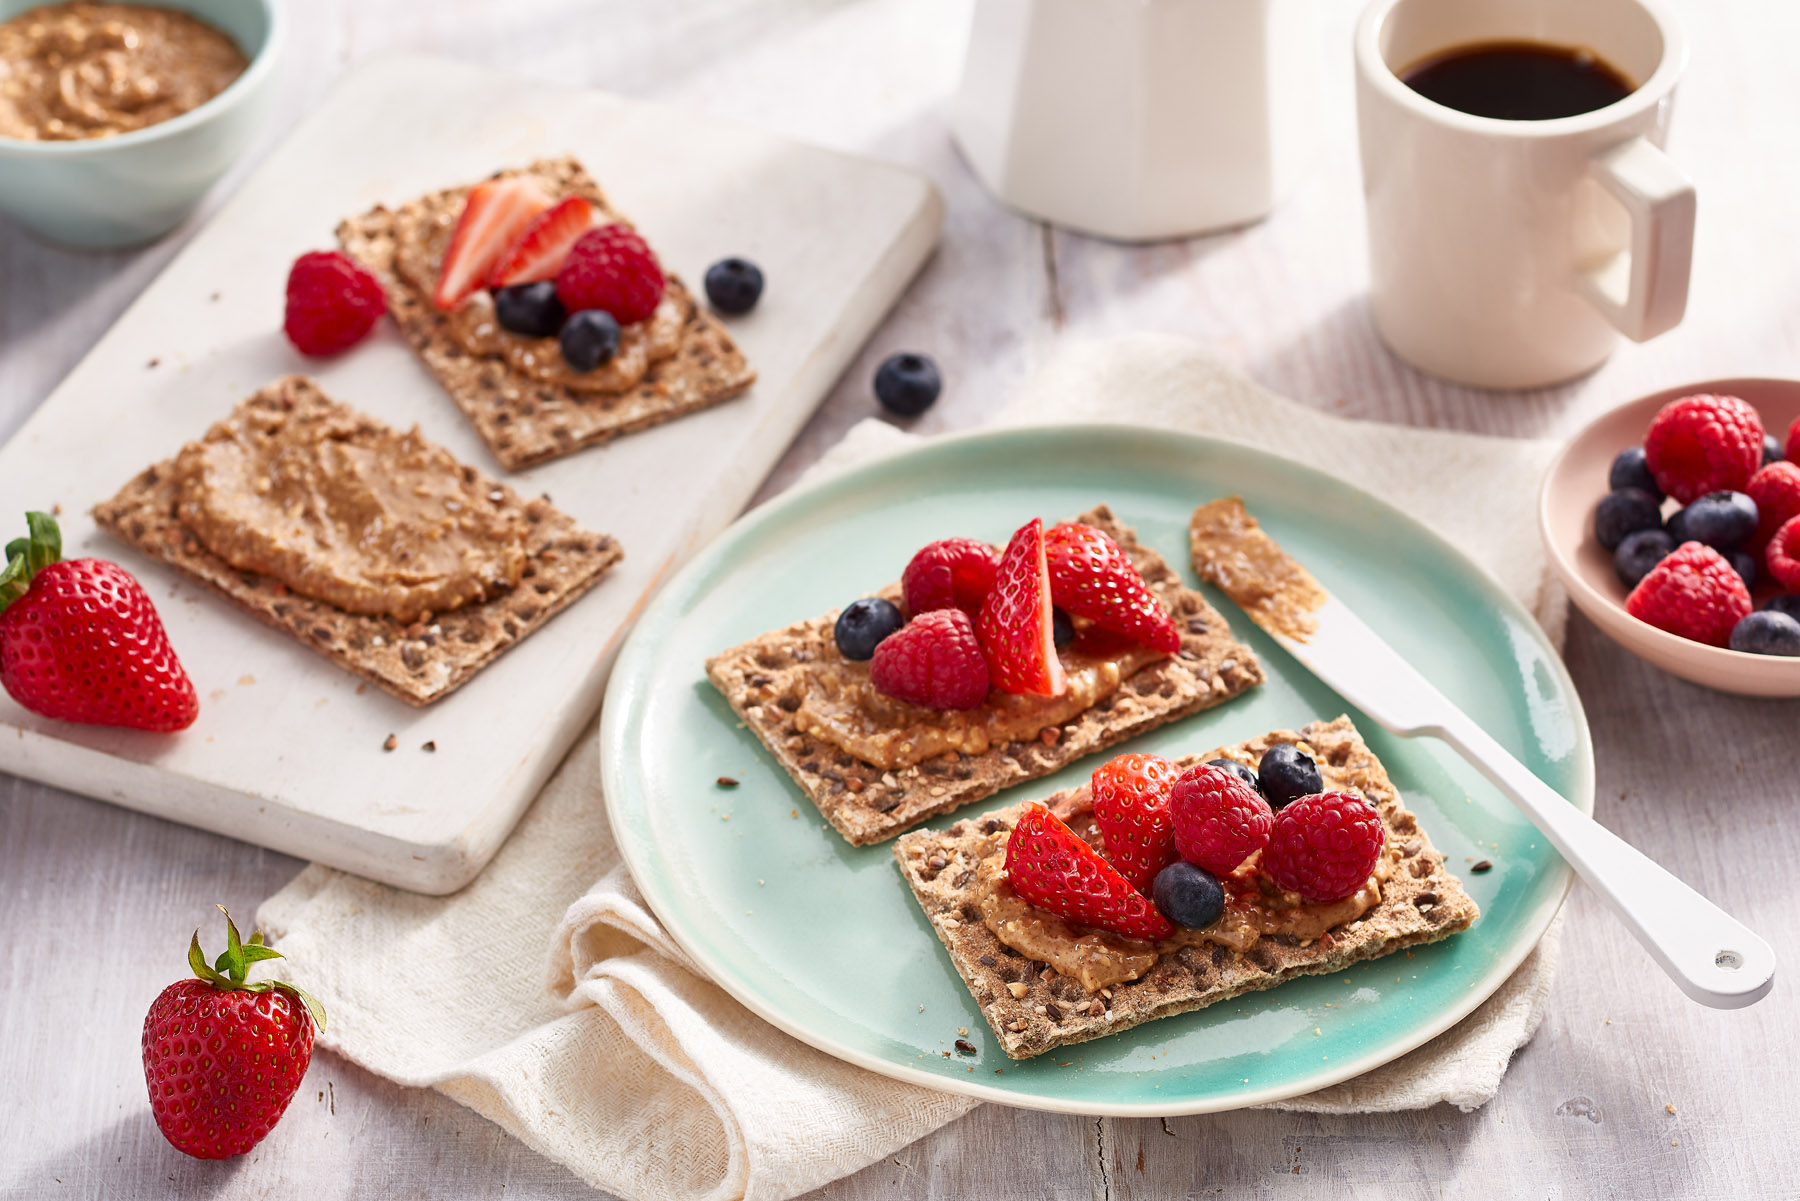 Mixed berries with peanut butter on Ryvita